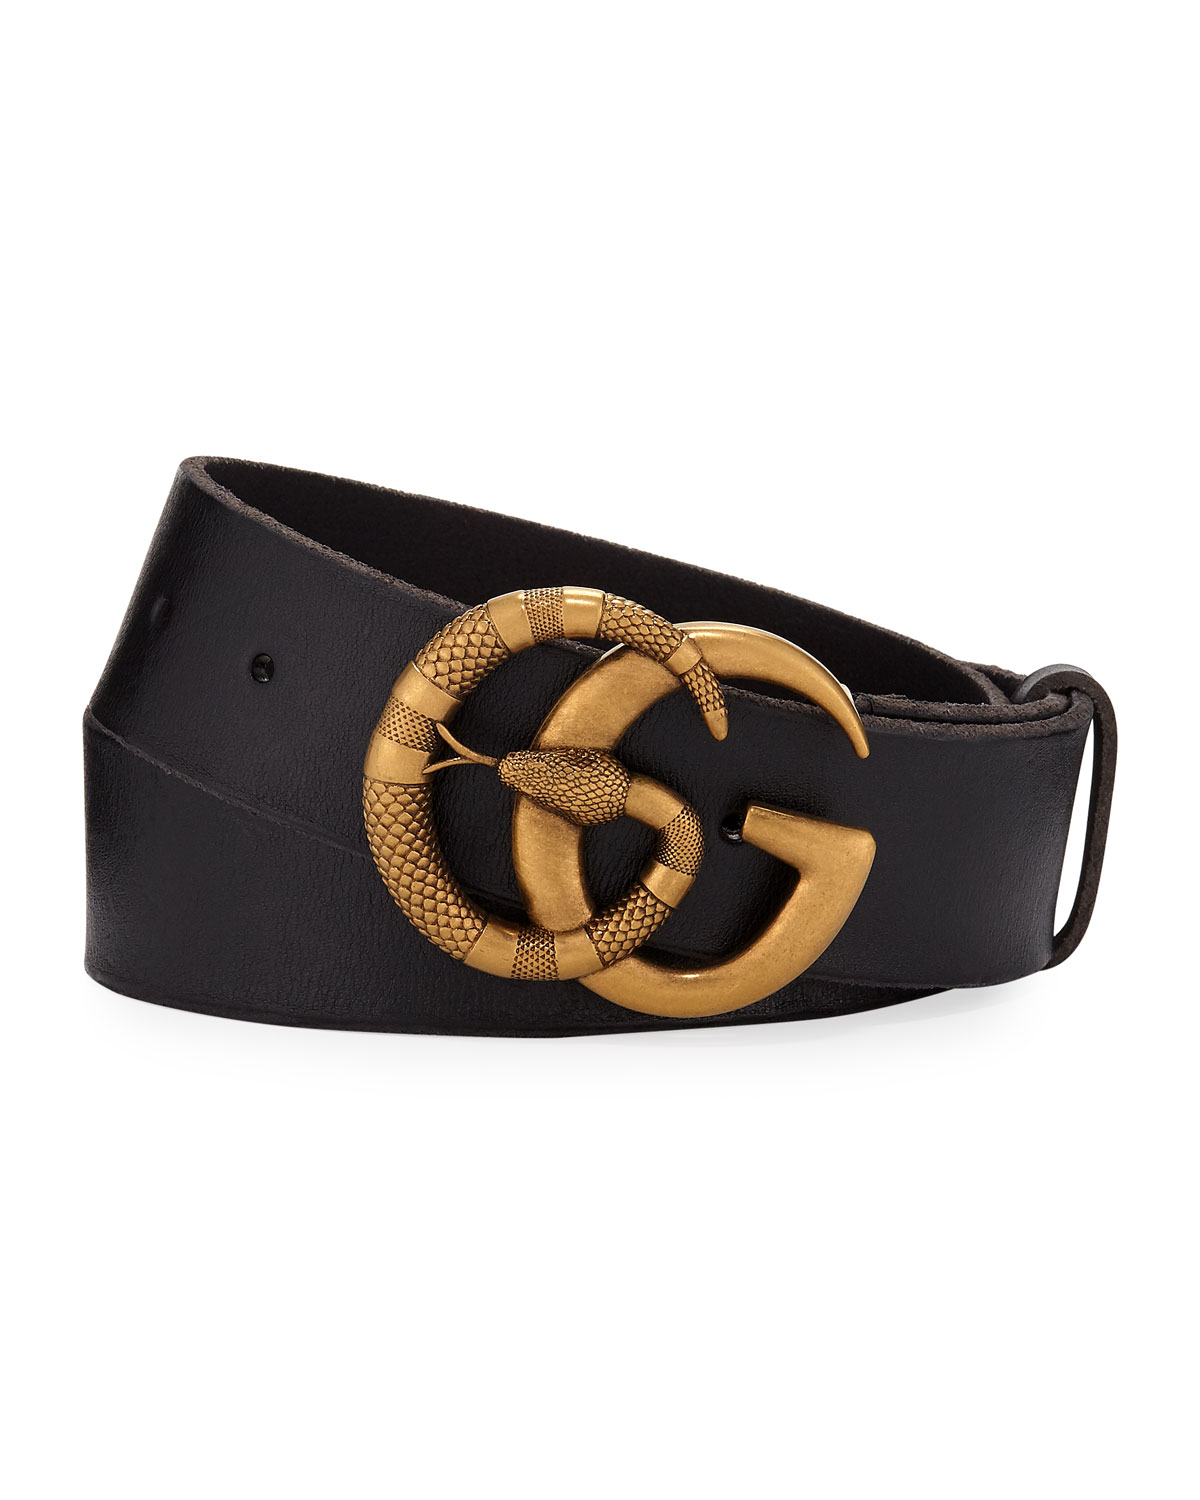 057cac5638d Gucci Men S Cuoio Toscano Snake Gg Belt Neiman Marcus